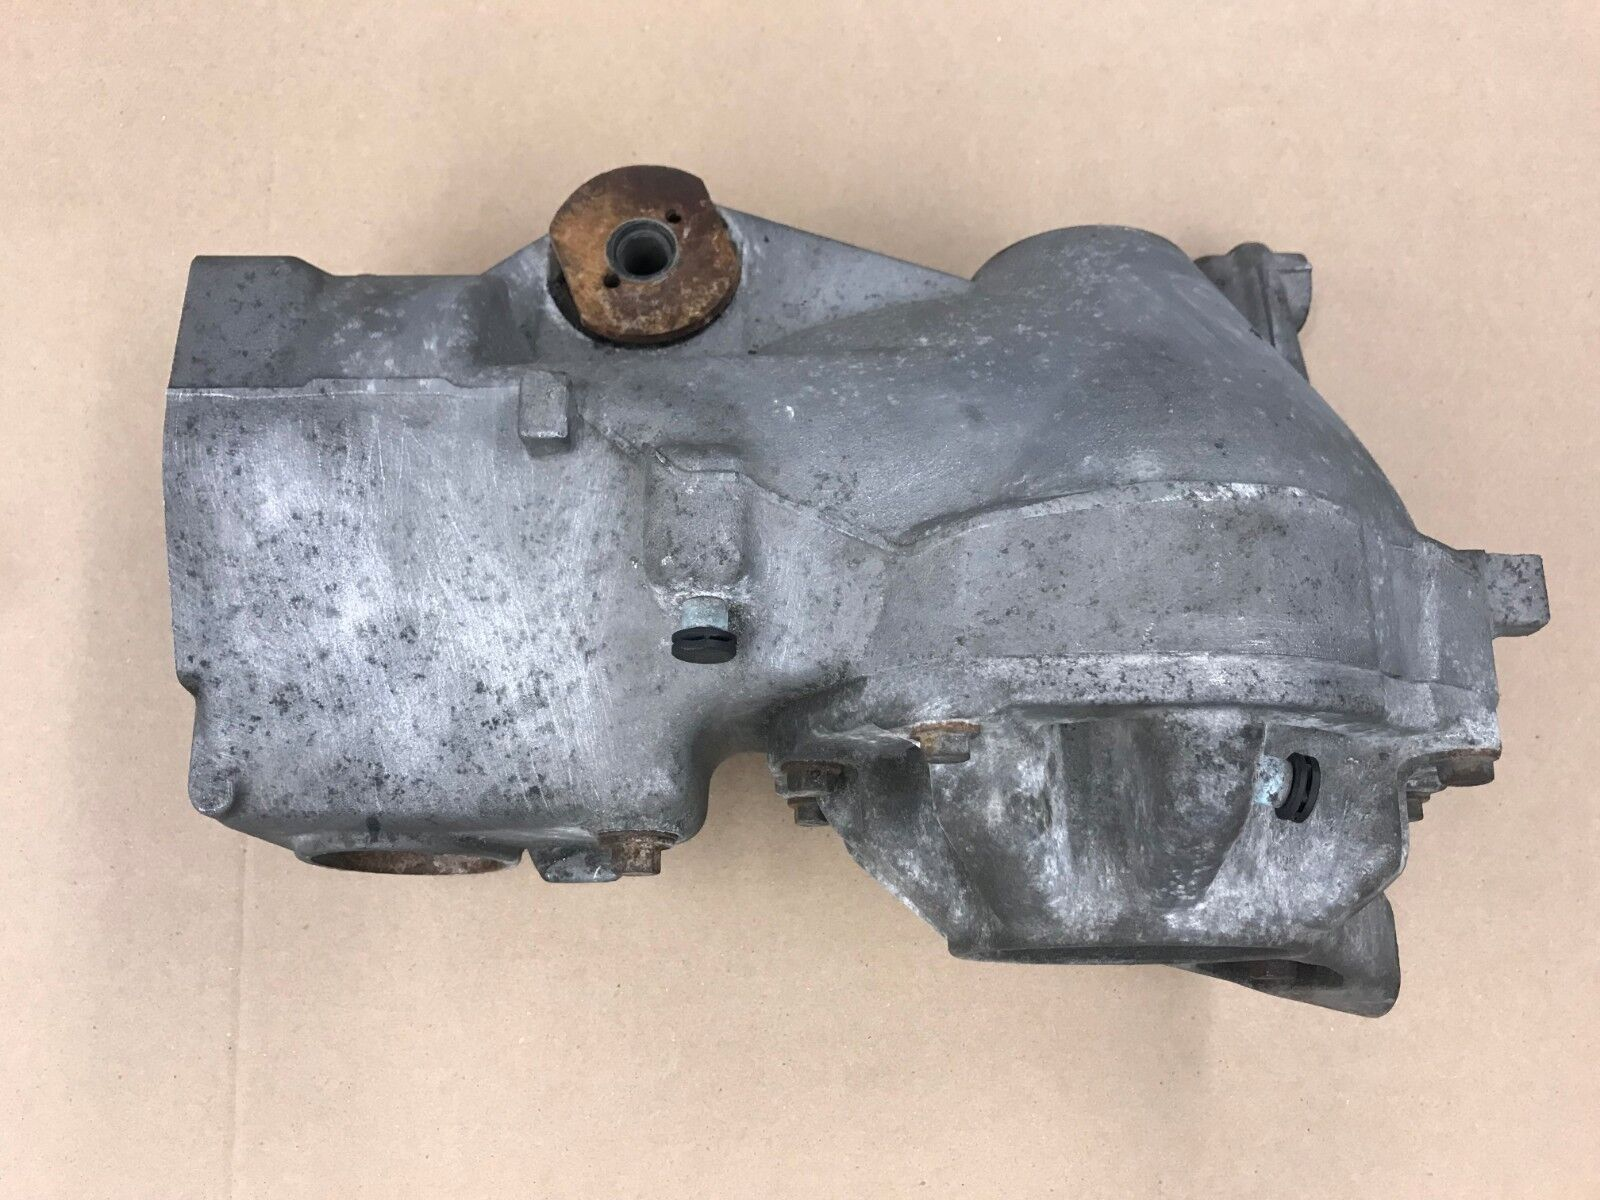 Used Volvo Transmission and Drivetrain Parts for Sale - Page 3